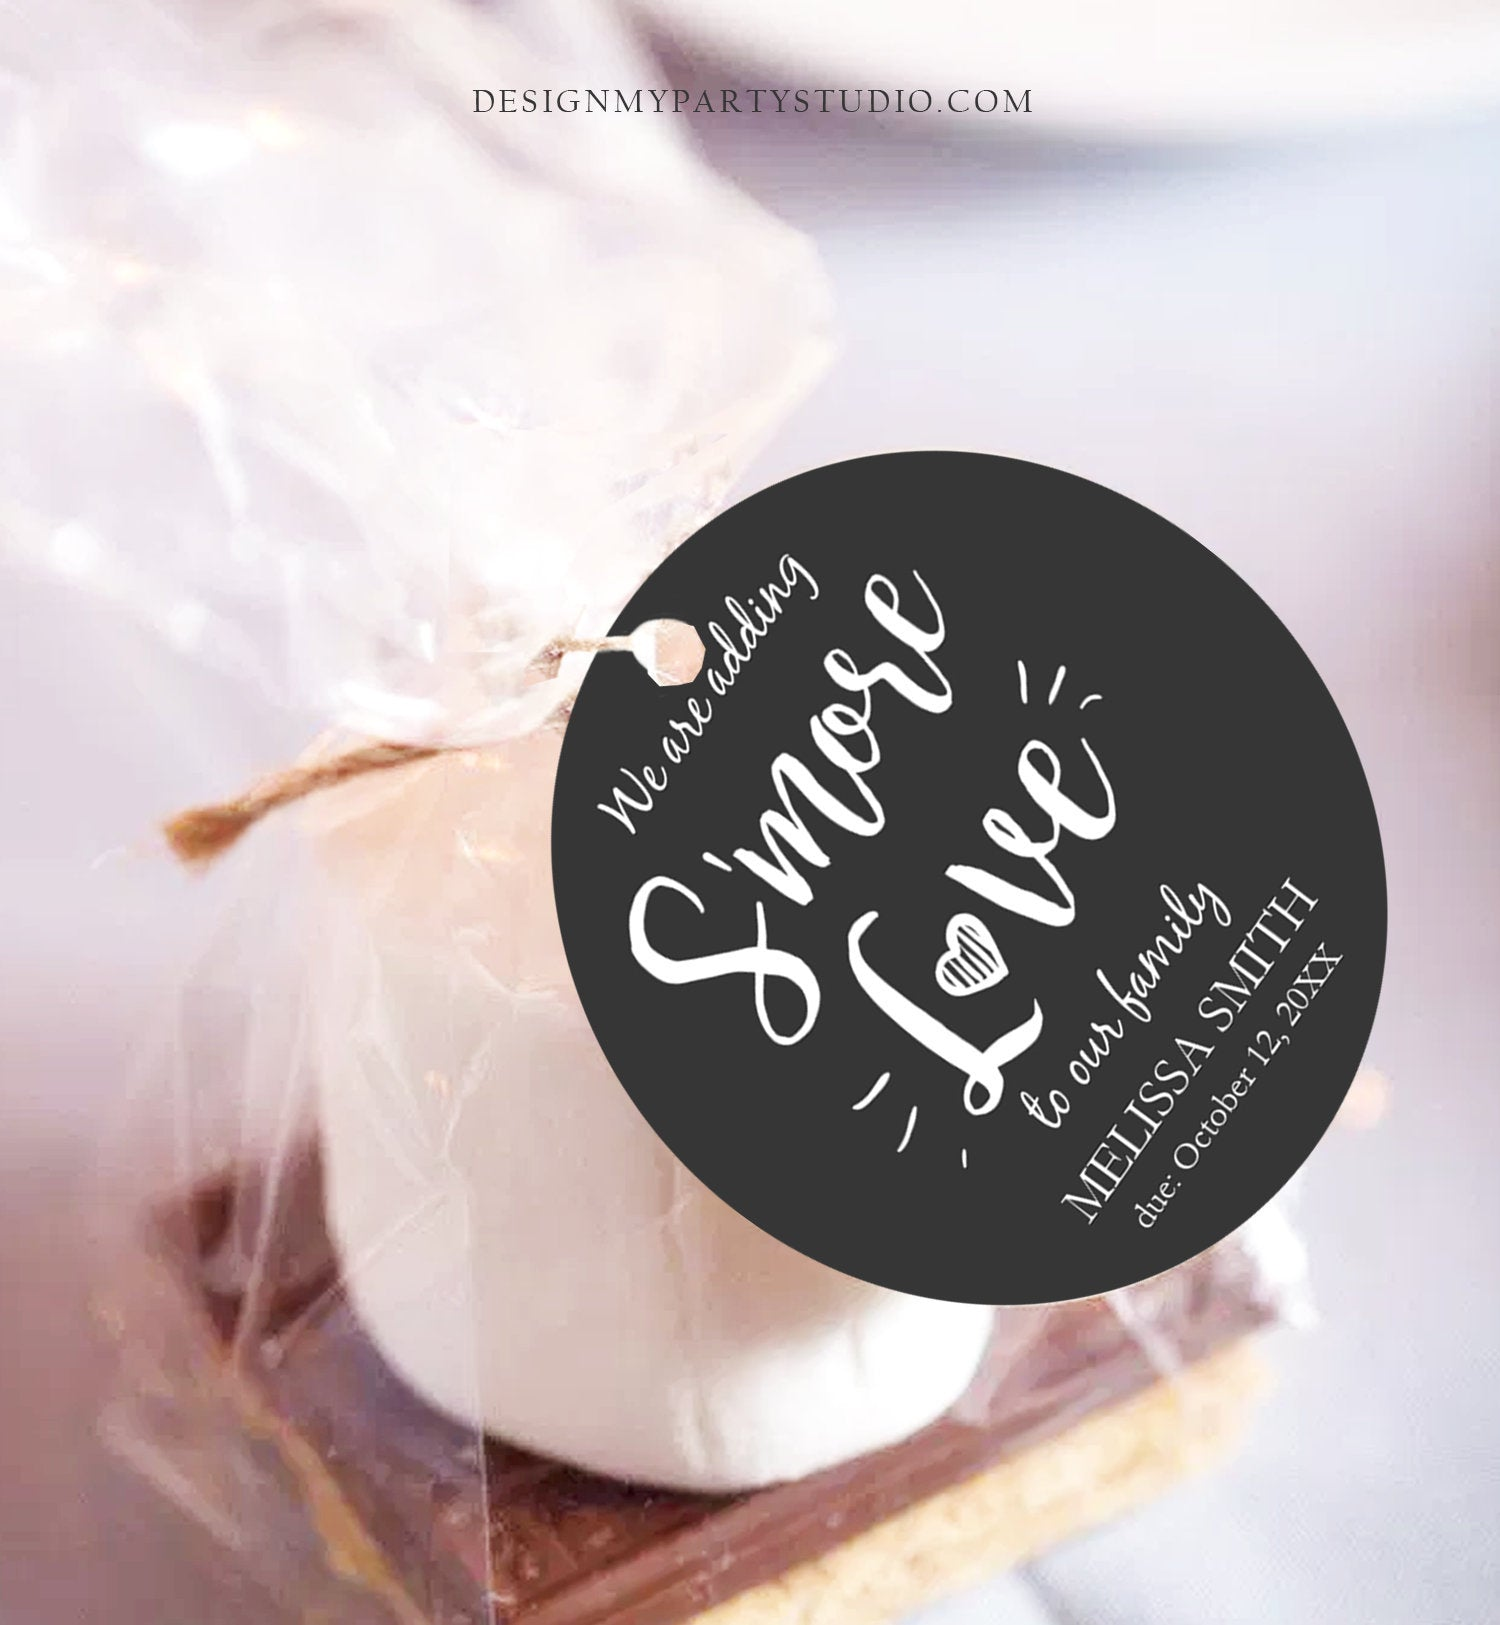 Editable Smore Love Favor Tag We Are Adding S More Love To Our Family Design My Party Studio